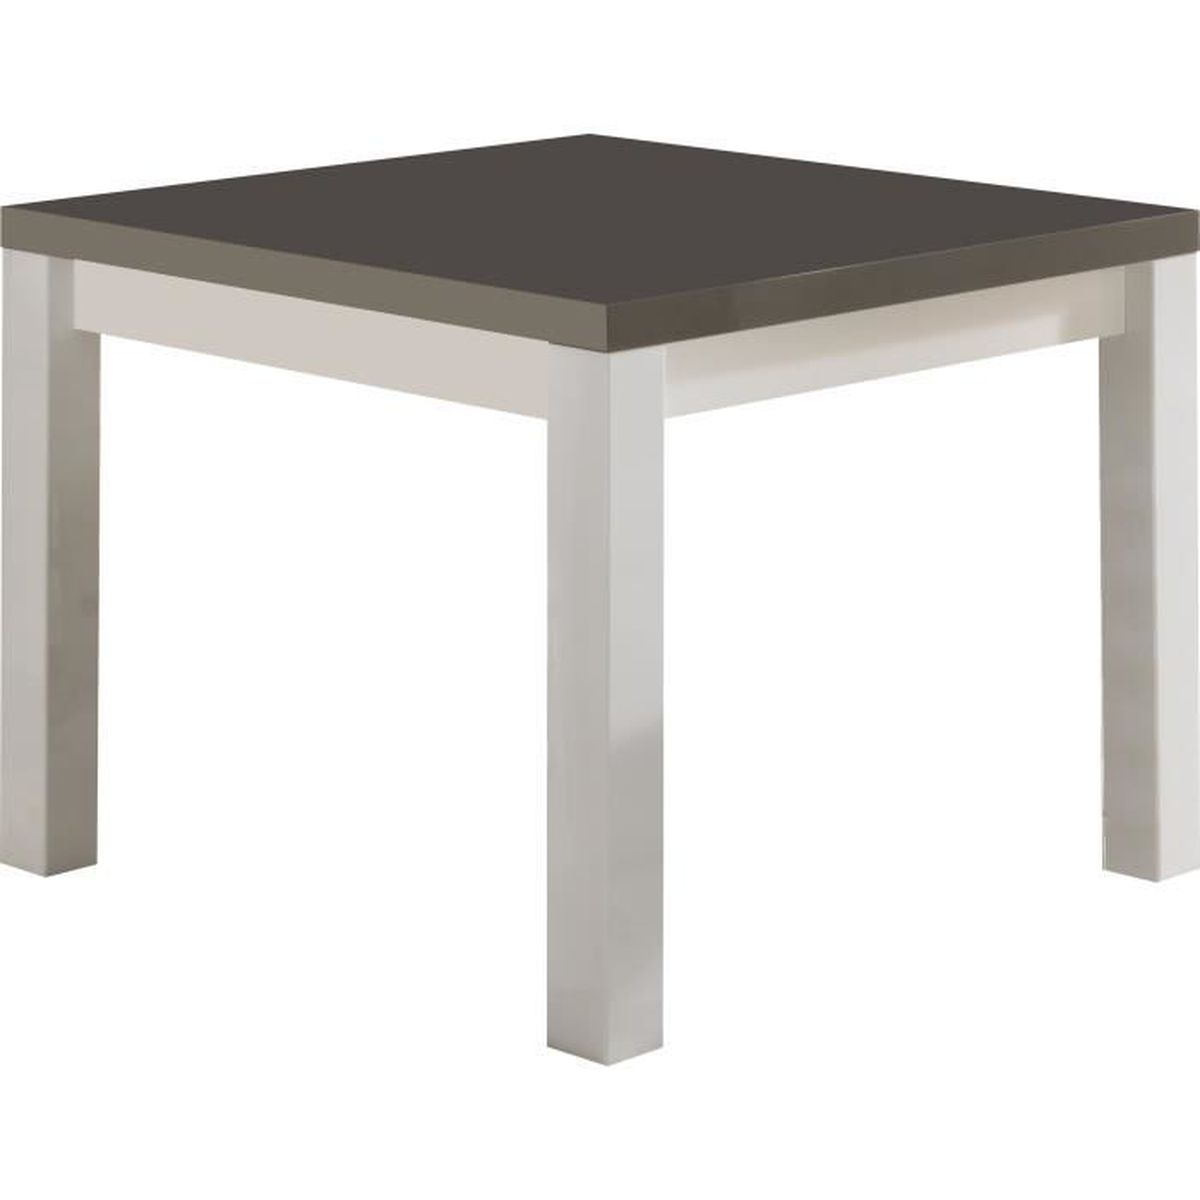 Table basse carr e design 100 cm blanc et gris laqu brillant blanc et gris - Table basse carree design ...